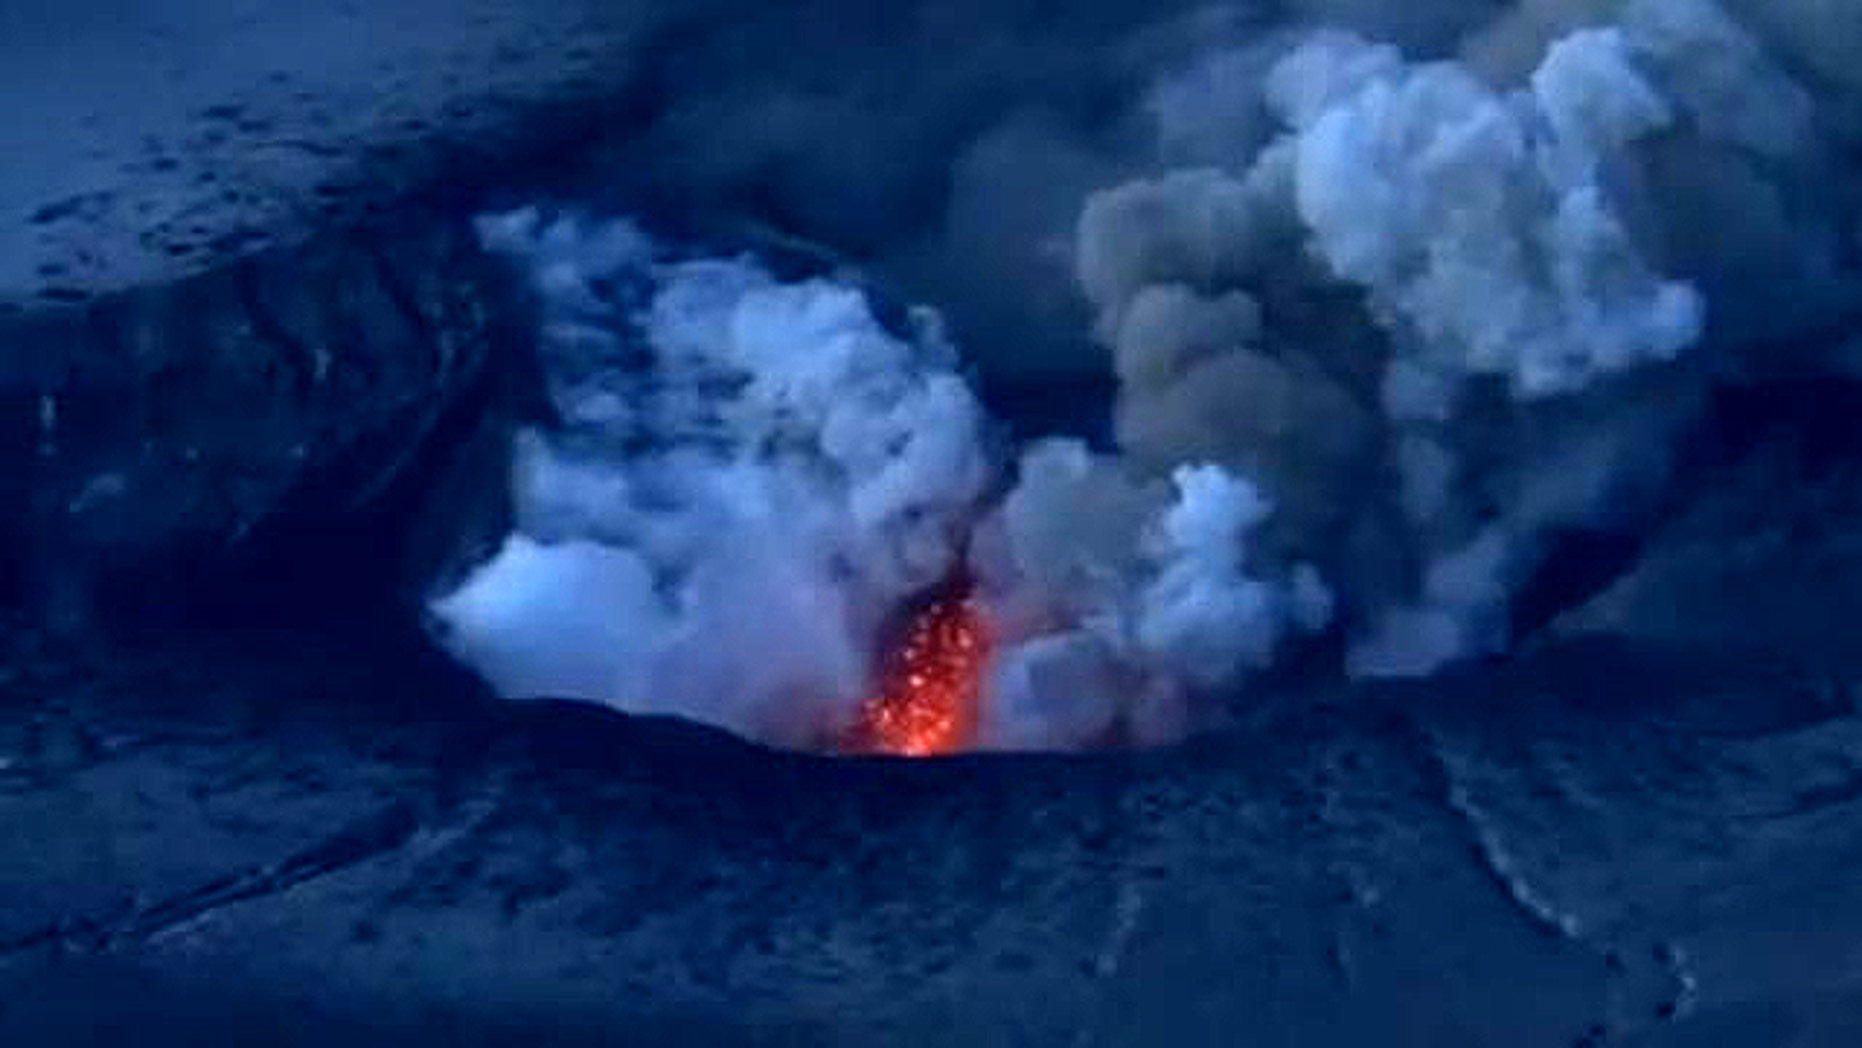 Though hard to make out in this screen capture, a YouTube video clearly shows shockwaves pouring out of Iceland's erupting Eyjafjallajokull volcano.